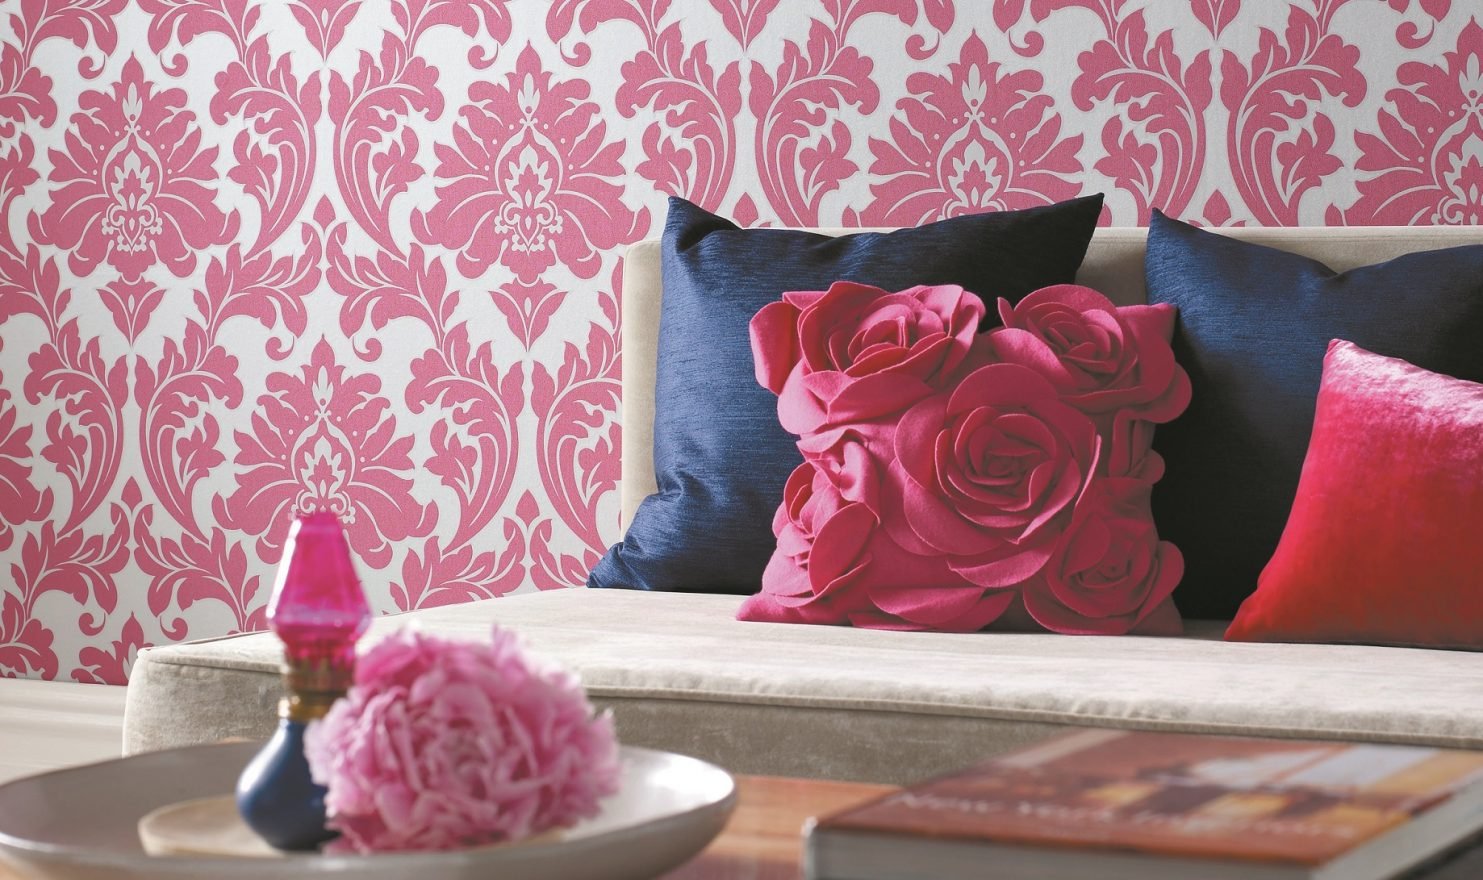 Create an accent wall with removeable wallpaper, like Graham & Brown's damask design from Home Depot.